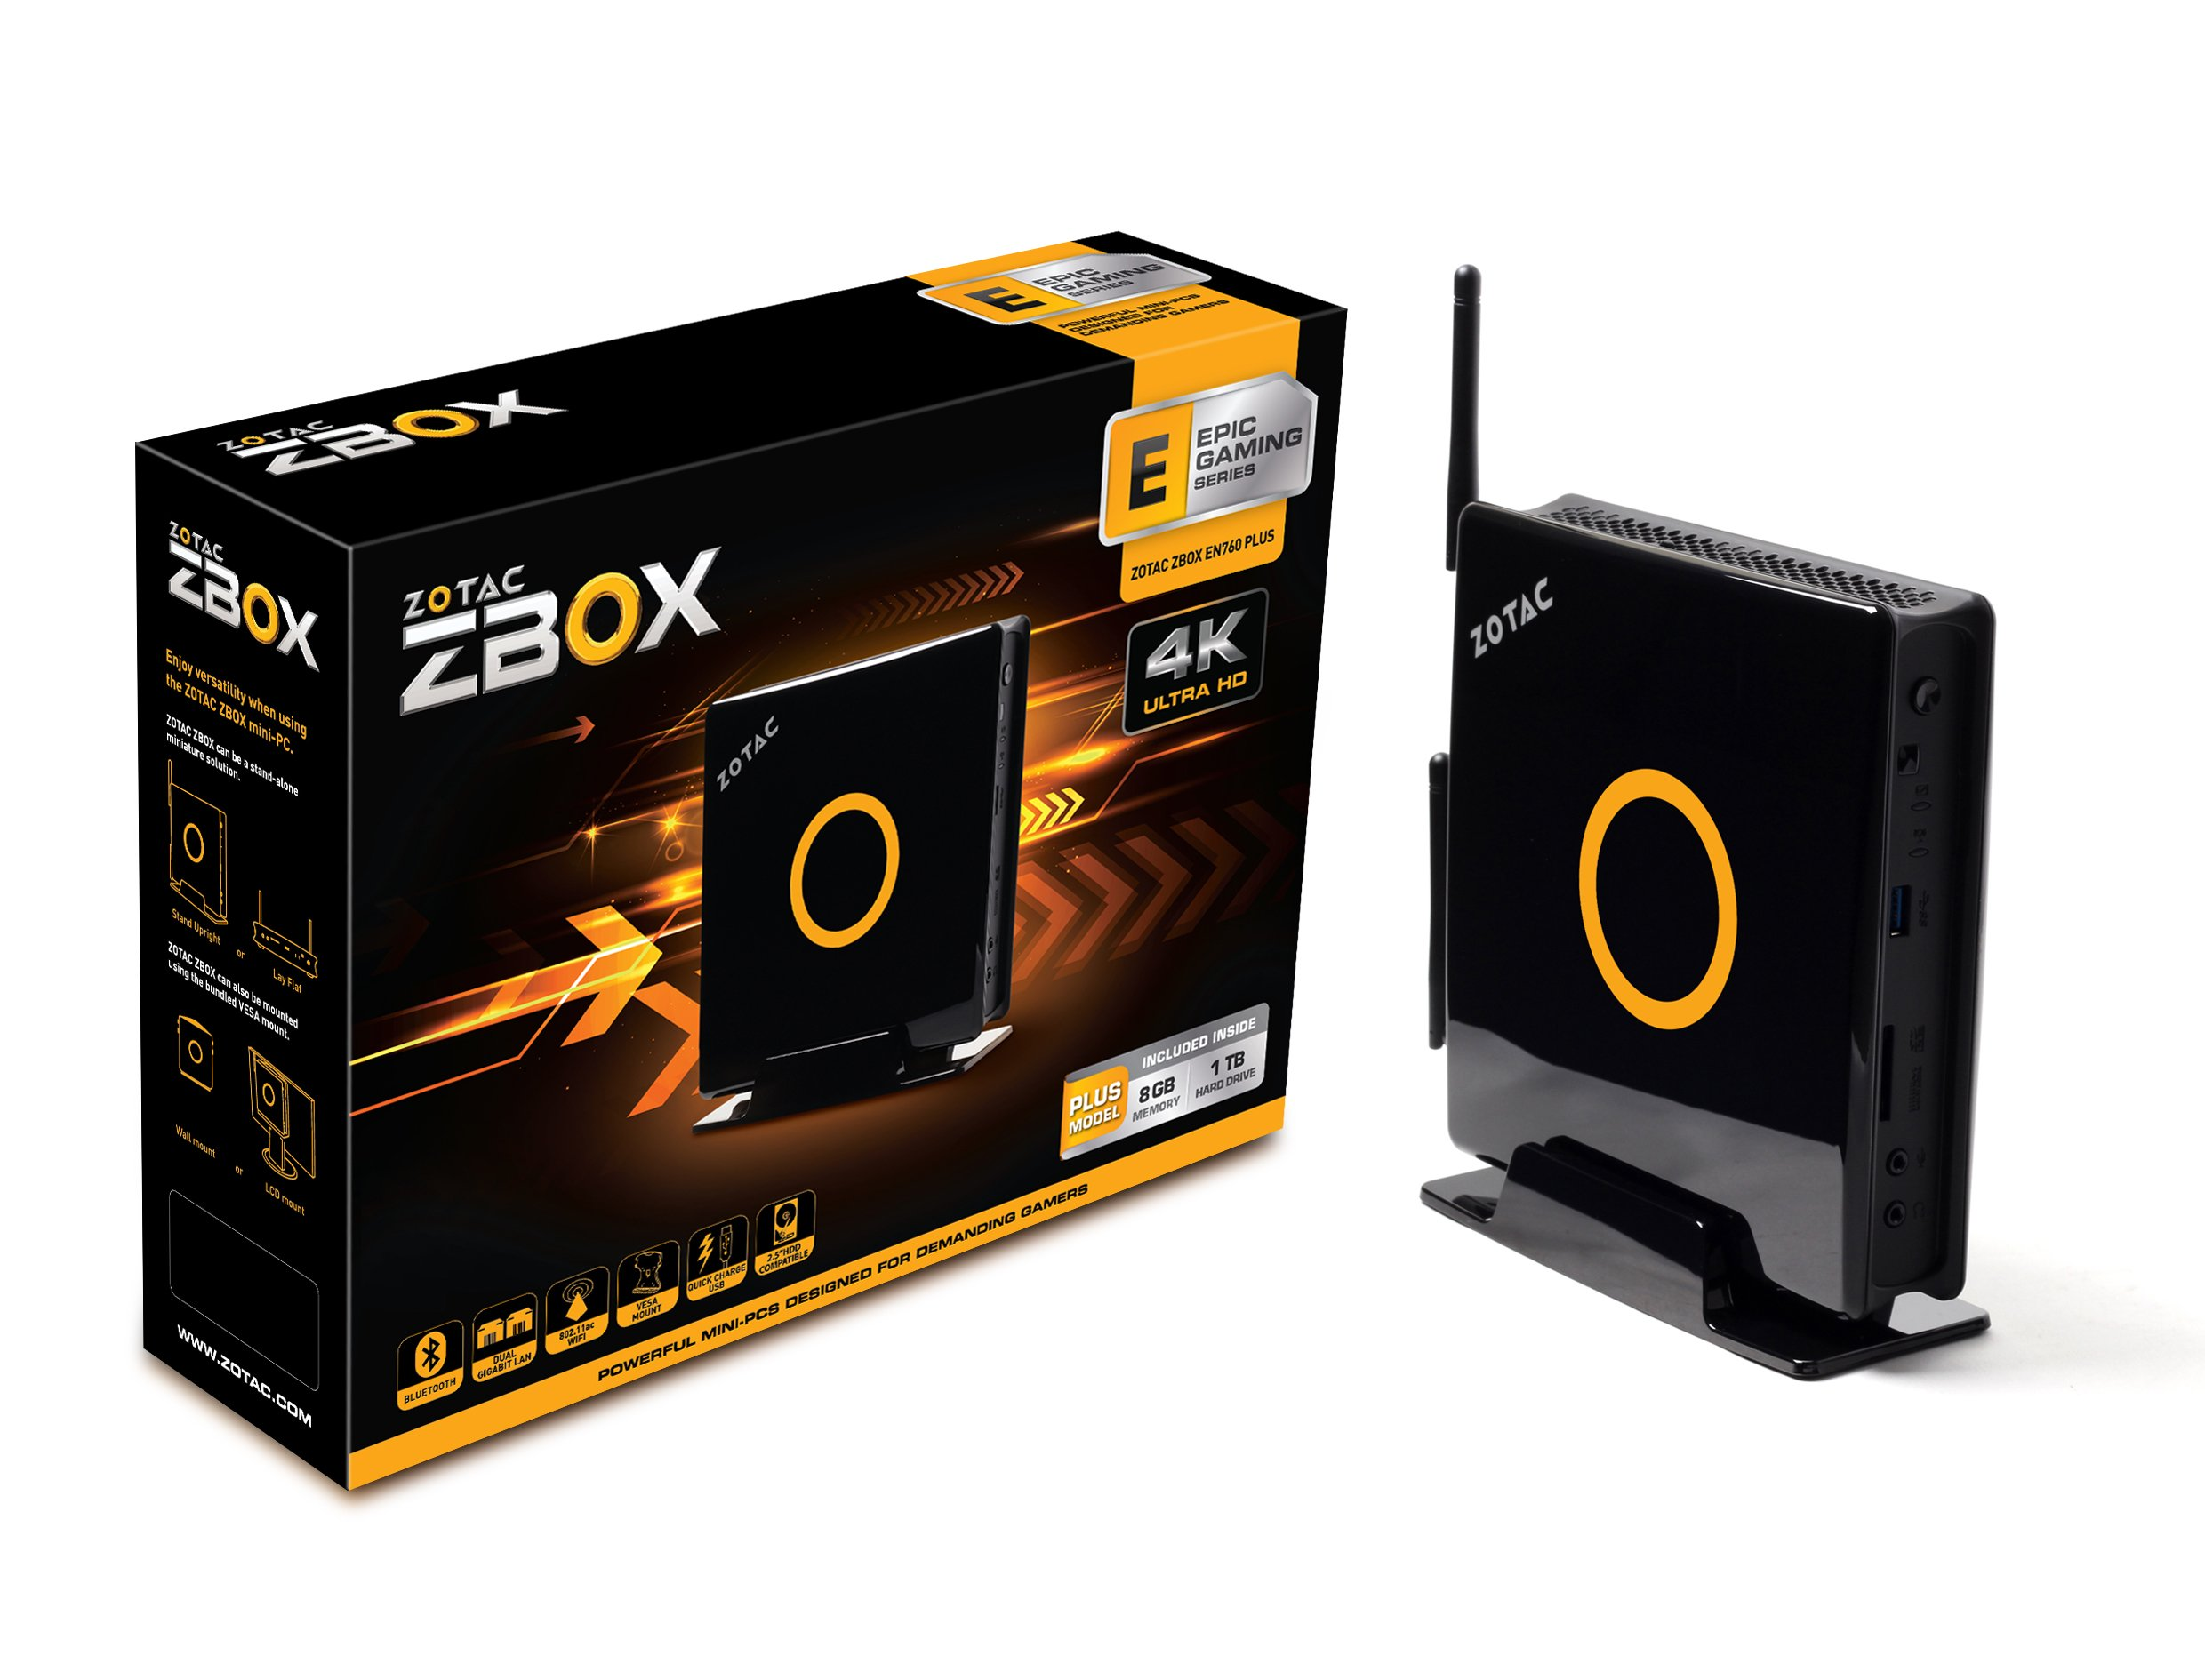 ZOTAC ZBOX E series Mini PC with Intel Core i5 4200U, dual-core, 1.6 GHz, Turbo up to 2.6 GHz Barebone System (ZBOX-EN760-P-U )